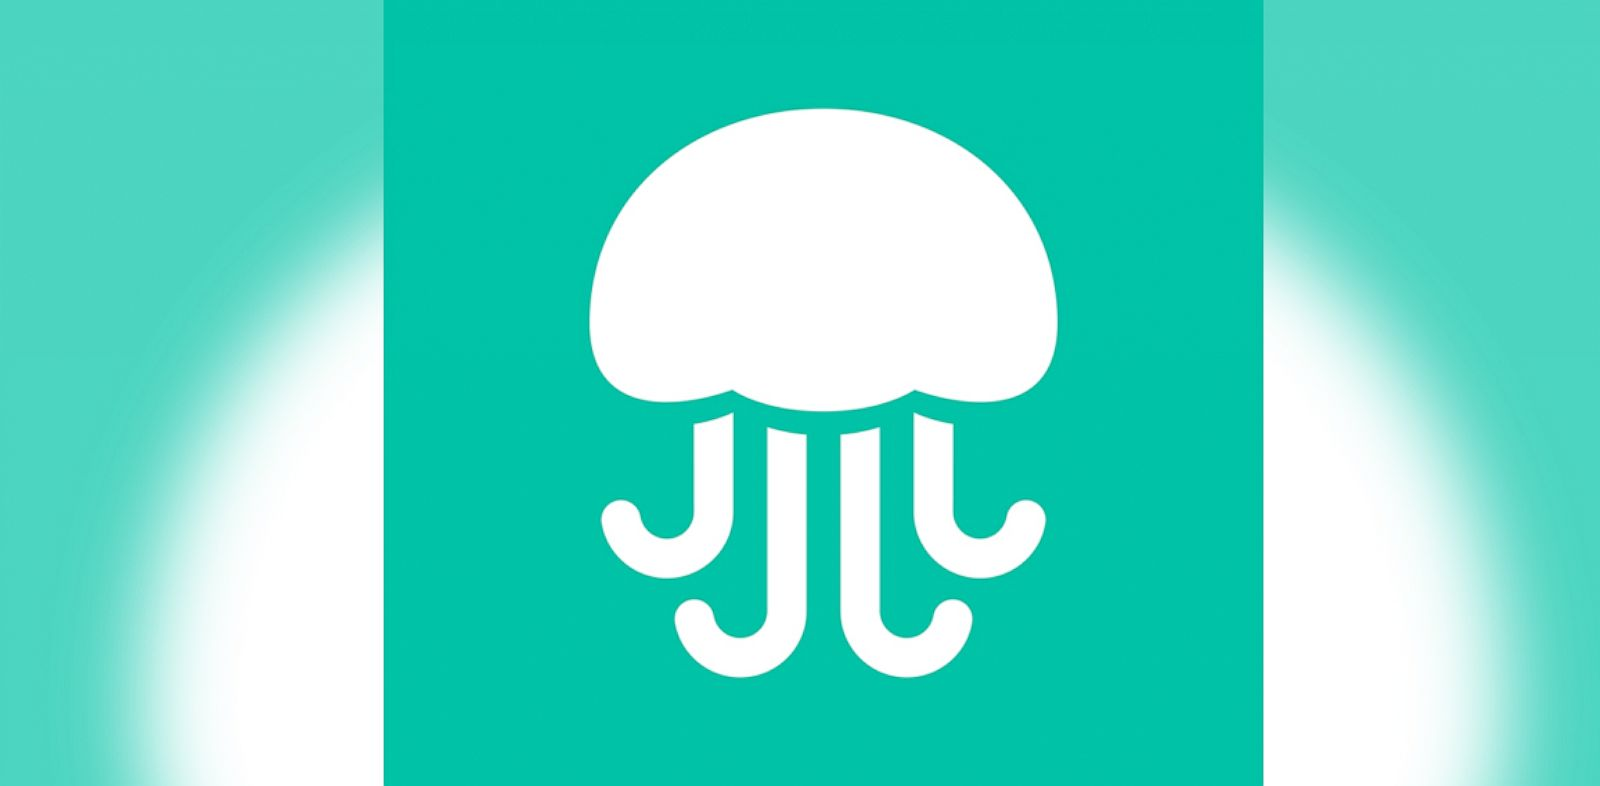 PHOTO: Jelly, a new app from Twitter co-founder Biz Stone, is looking to make the world more knowledgeable through social networking.